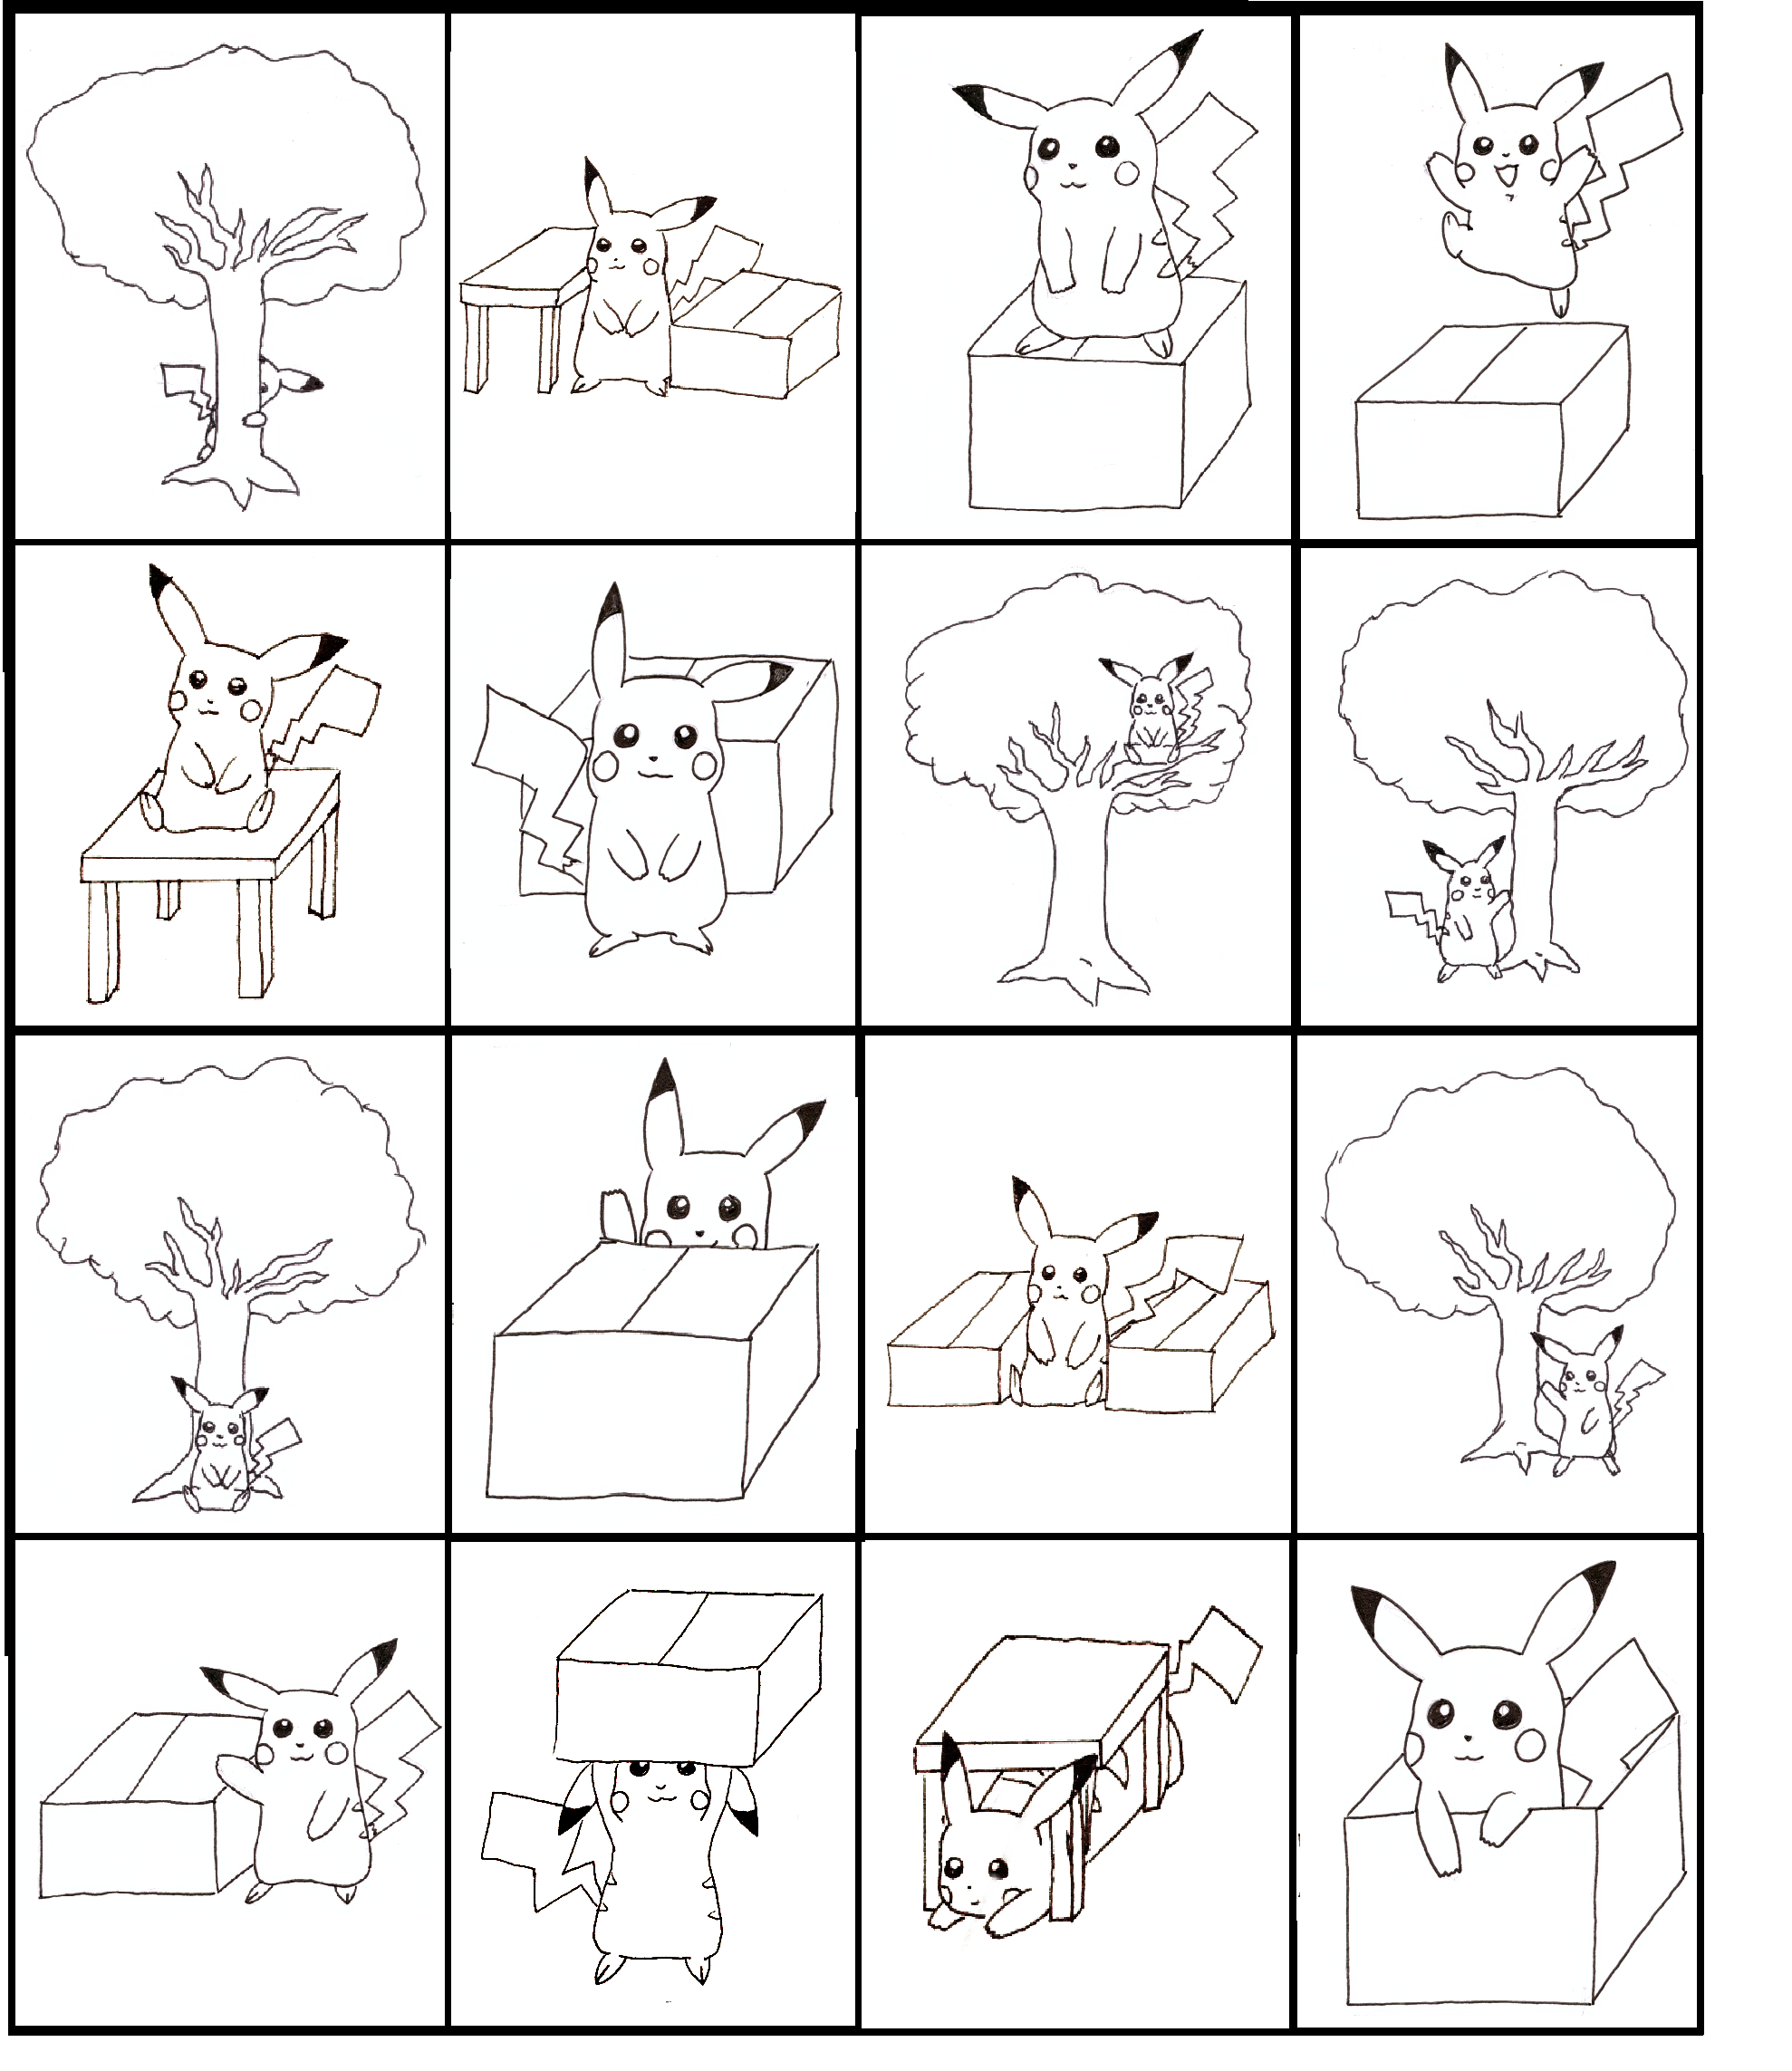 Pikachu Bingo Practicing Prepositions Board 4 Of 4 Made